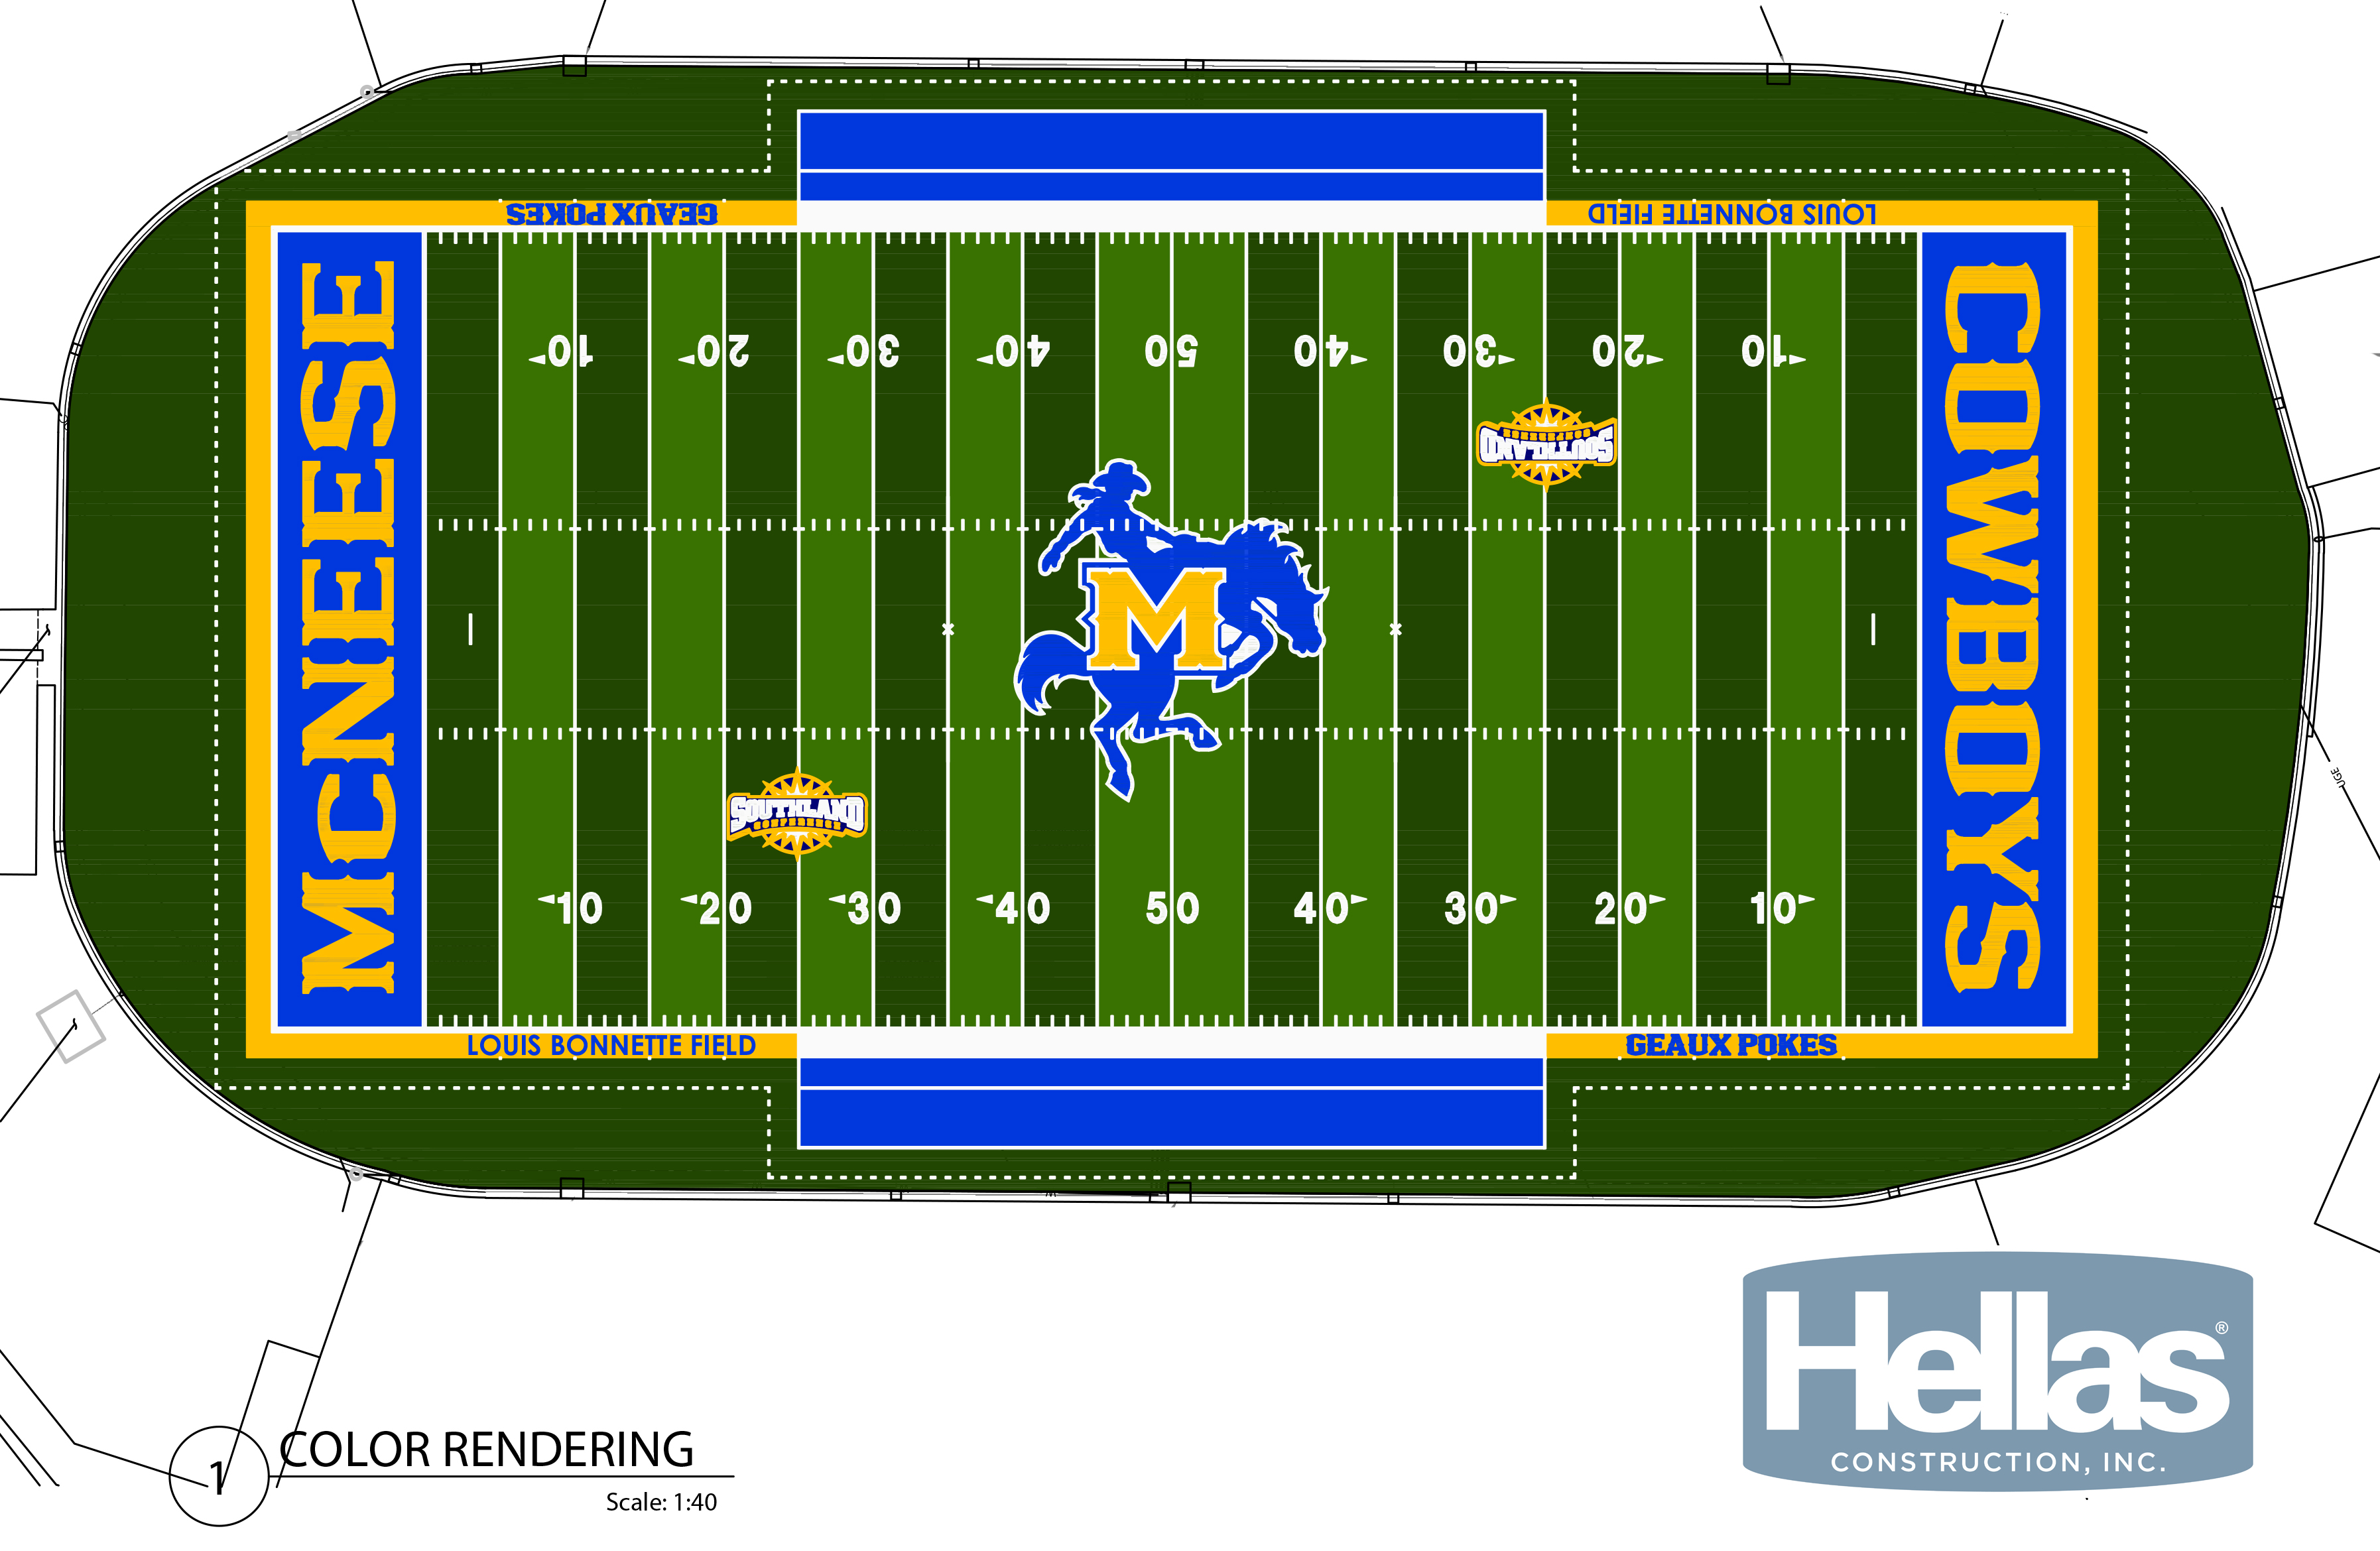 MCNEESE SELECTS HELLAS MATRIX TURF WITH HELIX FOR COWBOY STADIUM